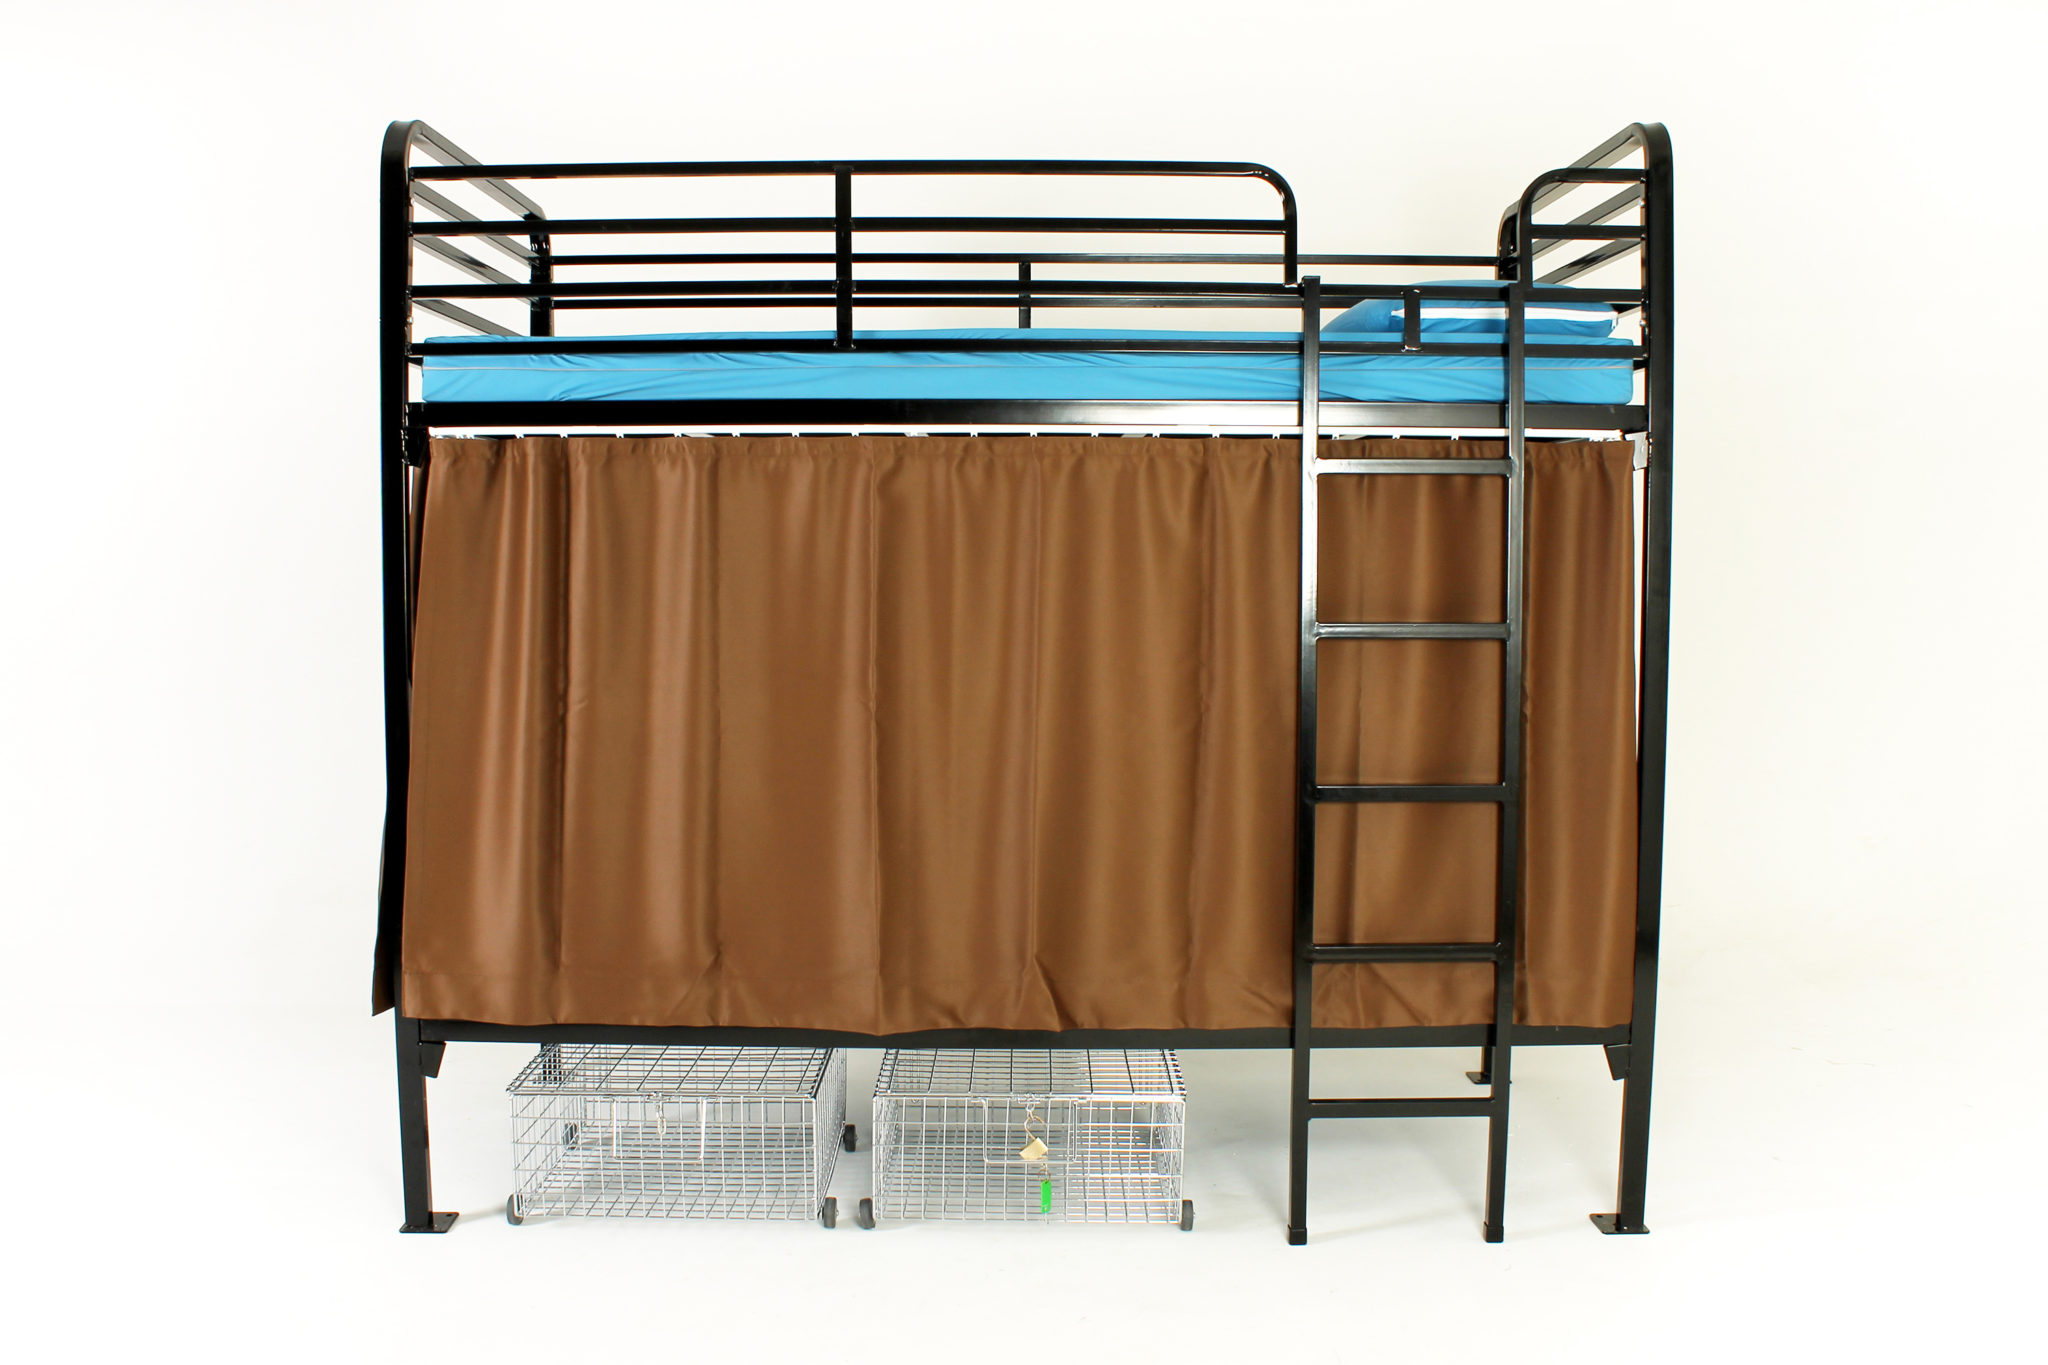 Contract bunk beds full set with privacy curtains and under bed storage lockers. the best bunk beds for hostels.